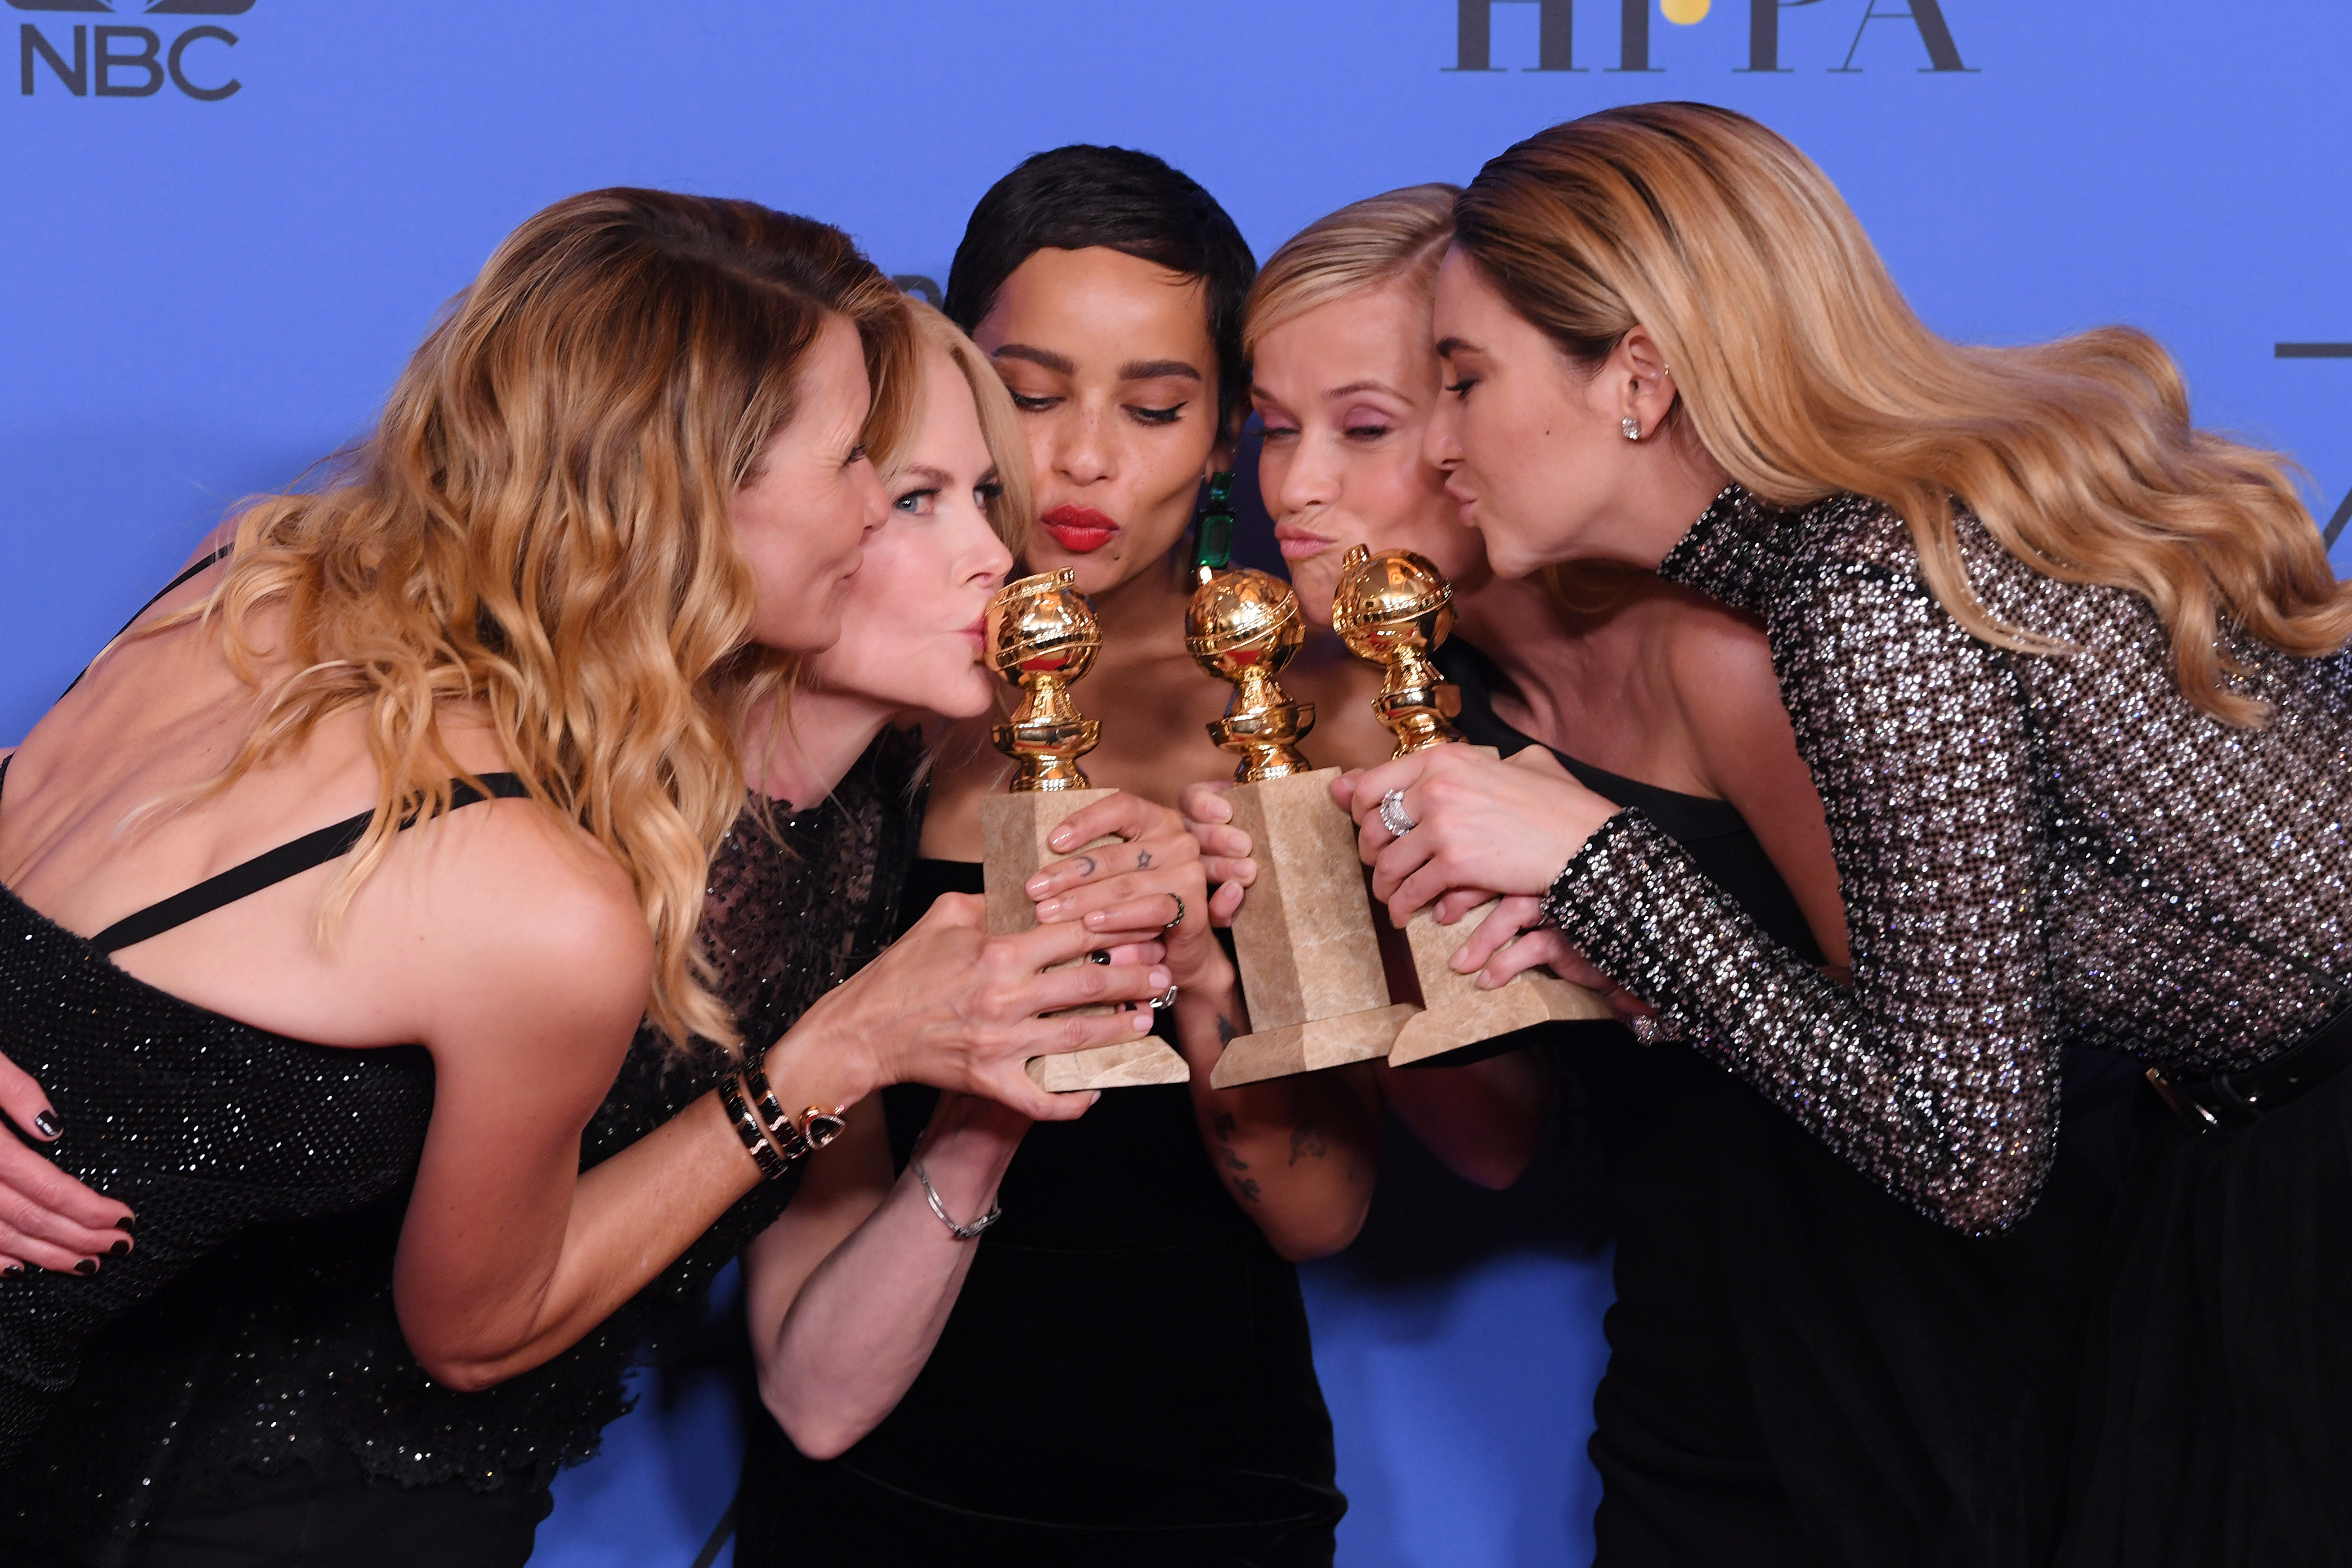 Laura Dern, Nicole Kidman, Zoe Kravitz, Reese Witherspoon and Shailene Woodley posed together at the Golden Globes in Beverky Hills on Jan. 7, 2018.